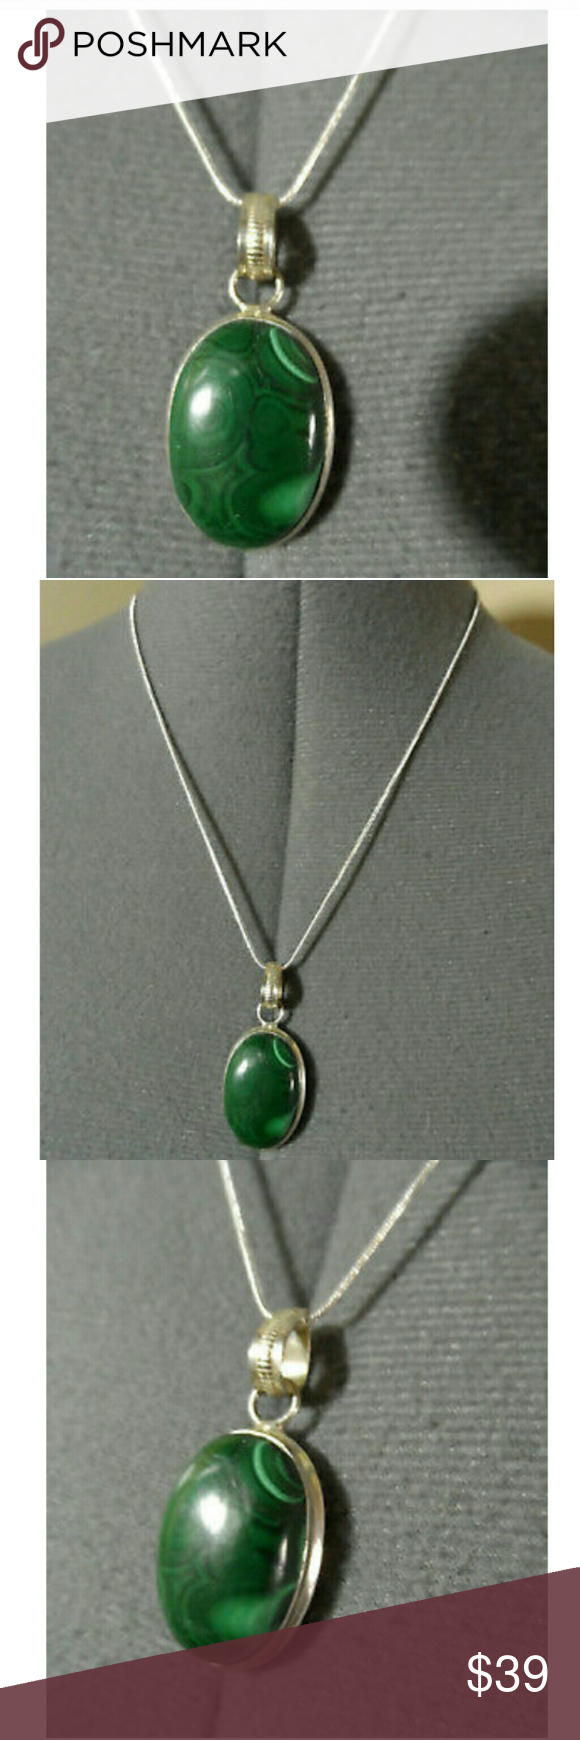 New malachite pendant u silver necklace set boutique